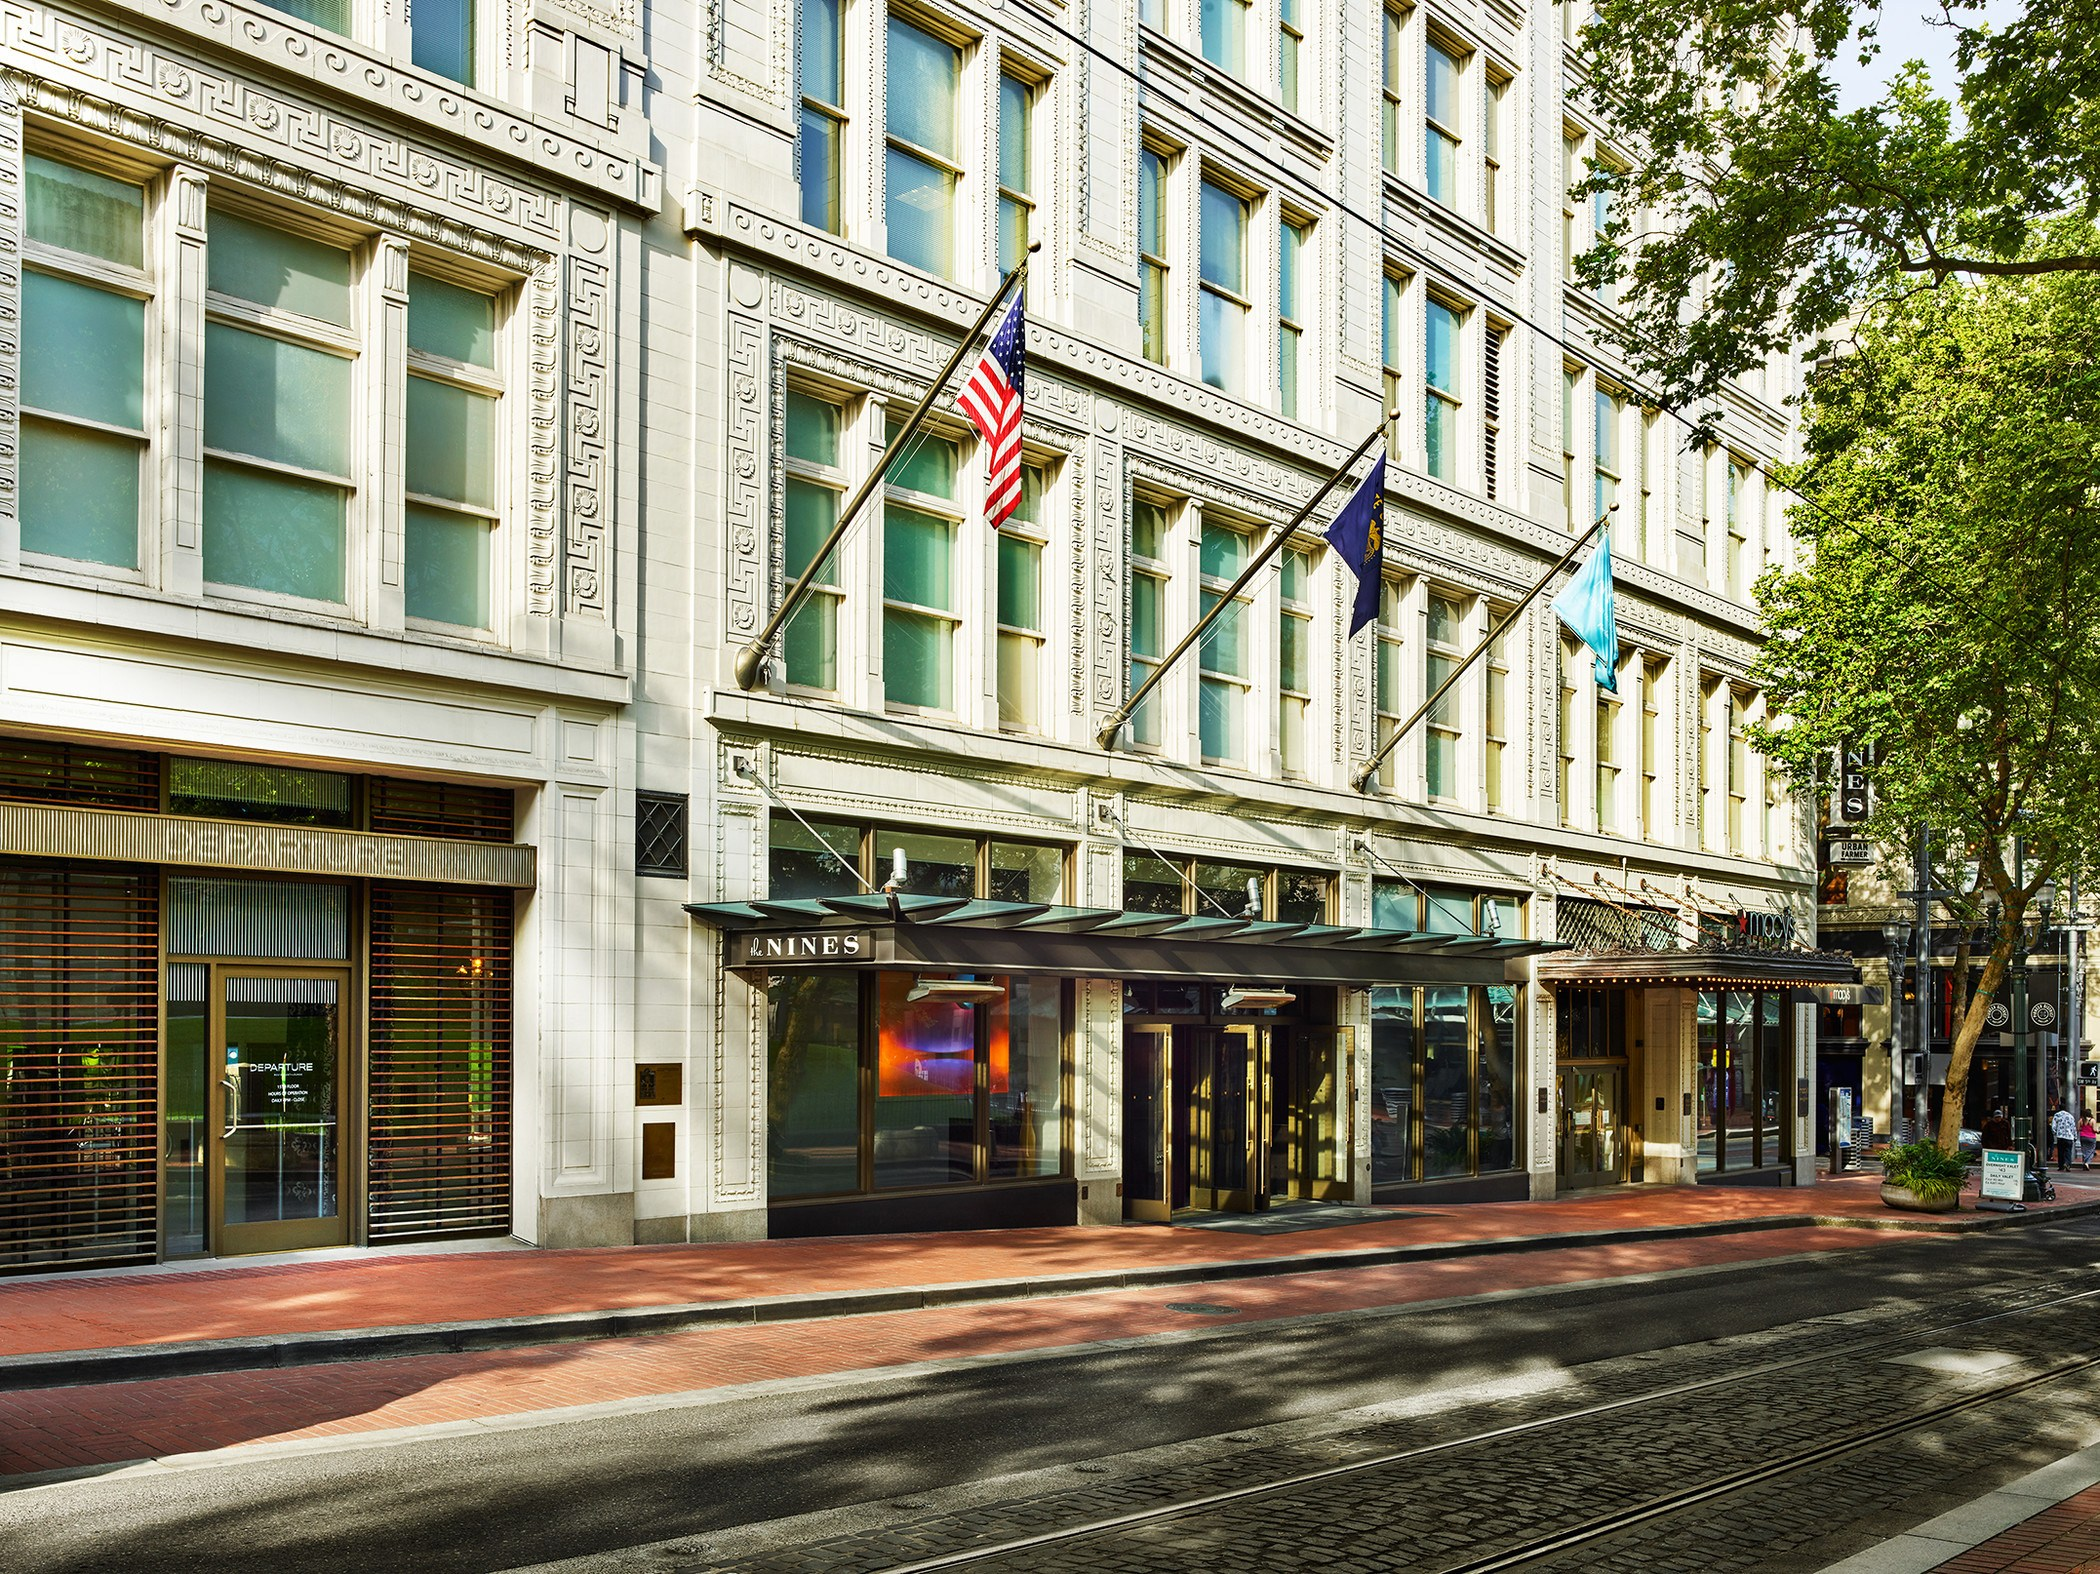 exterior facade and entrance to the nines hotel in portland